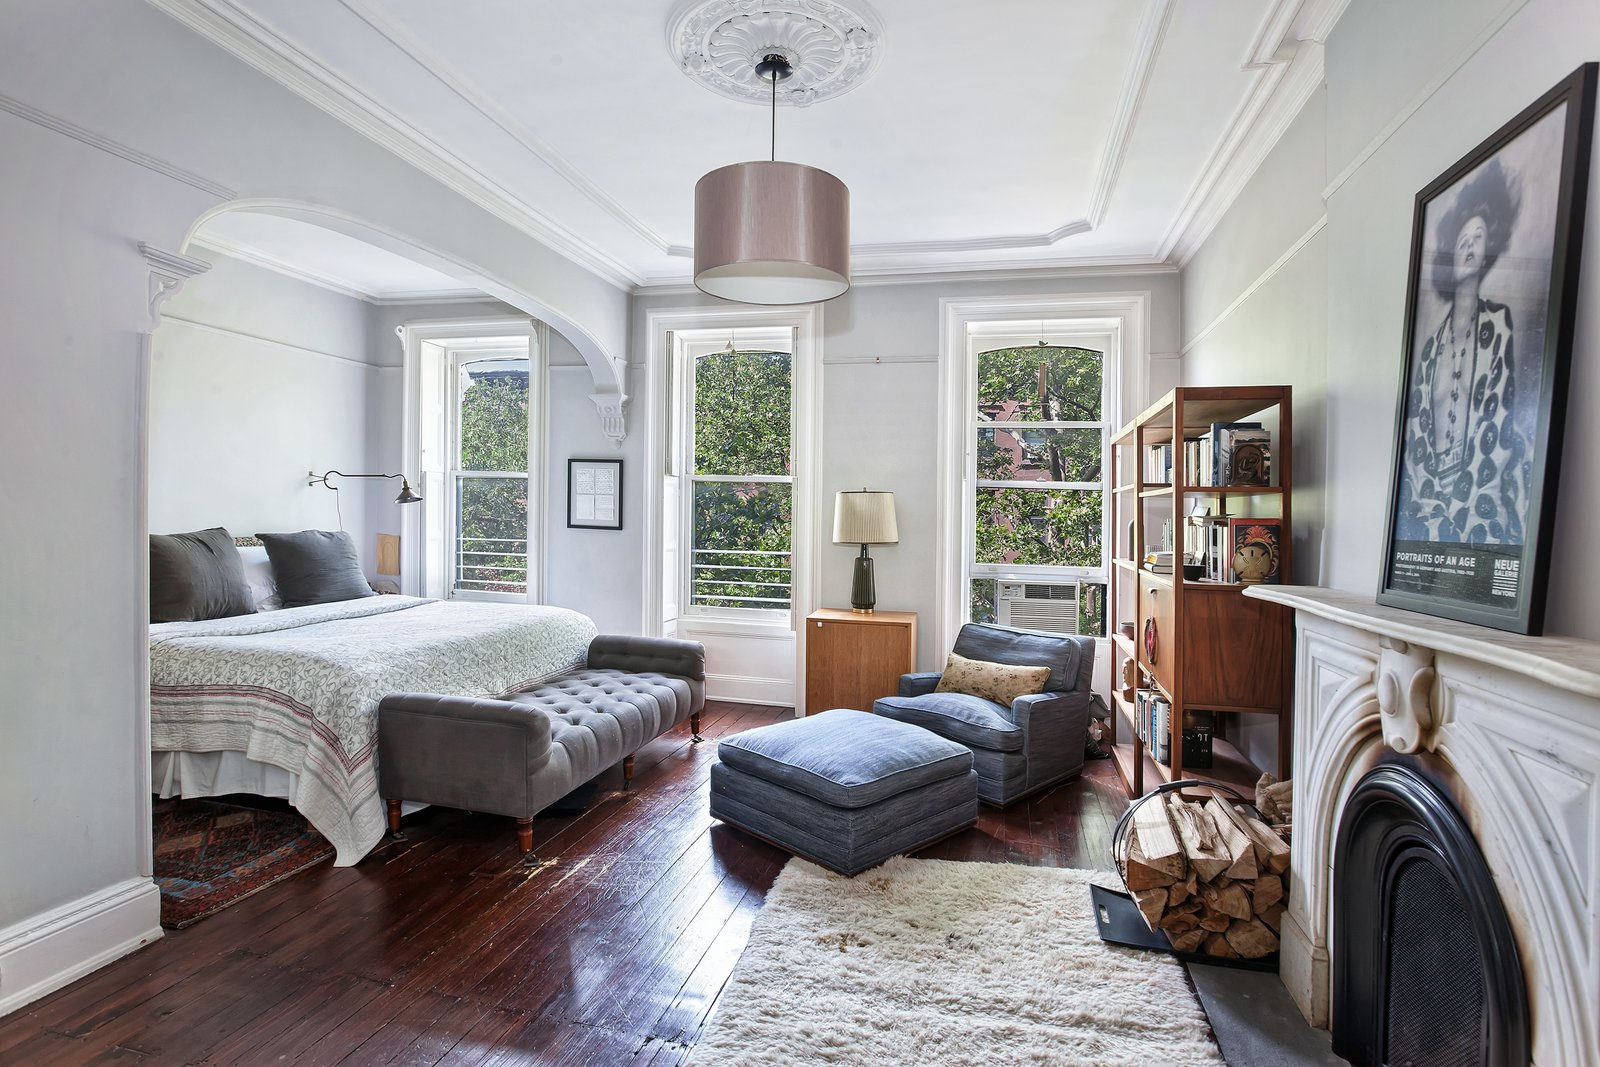 Maggie Gyllenhaal and Peter Sarsgaard's Park Slope Townhouse master bedroom